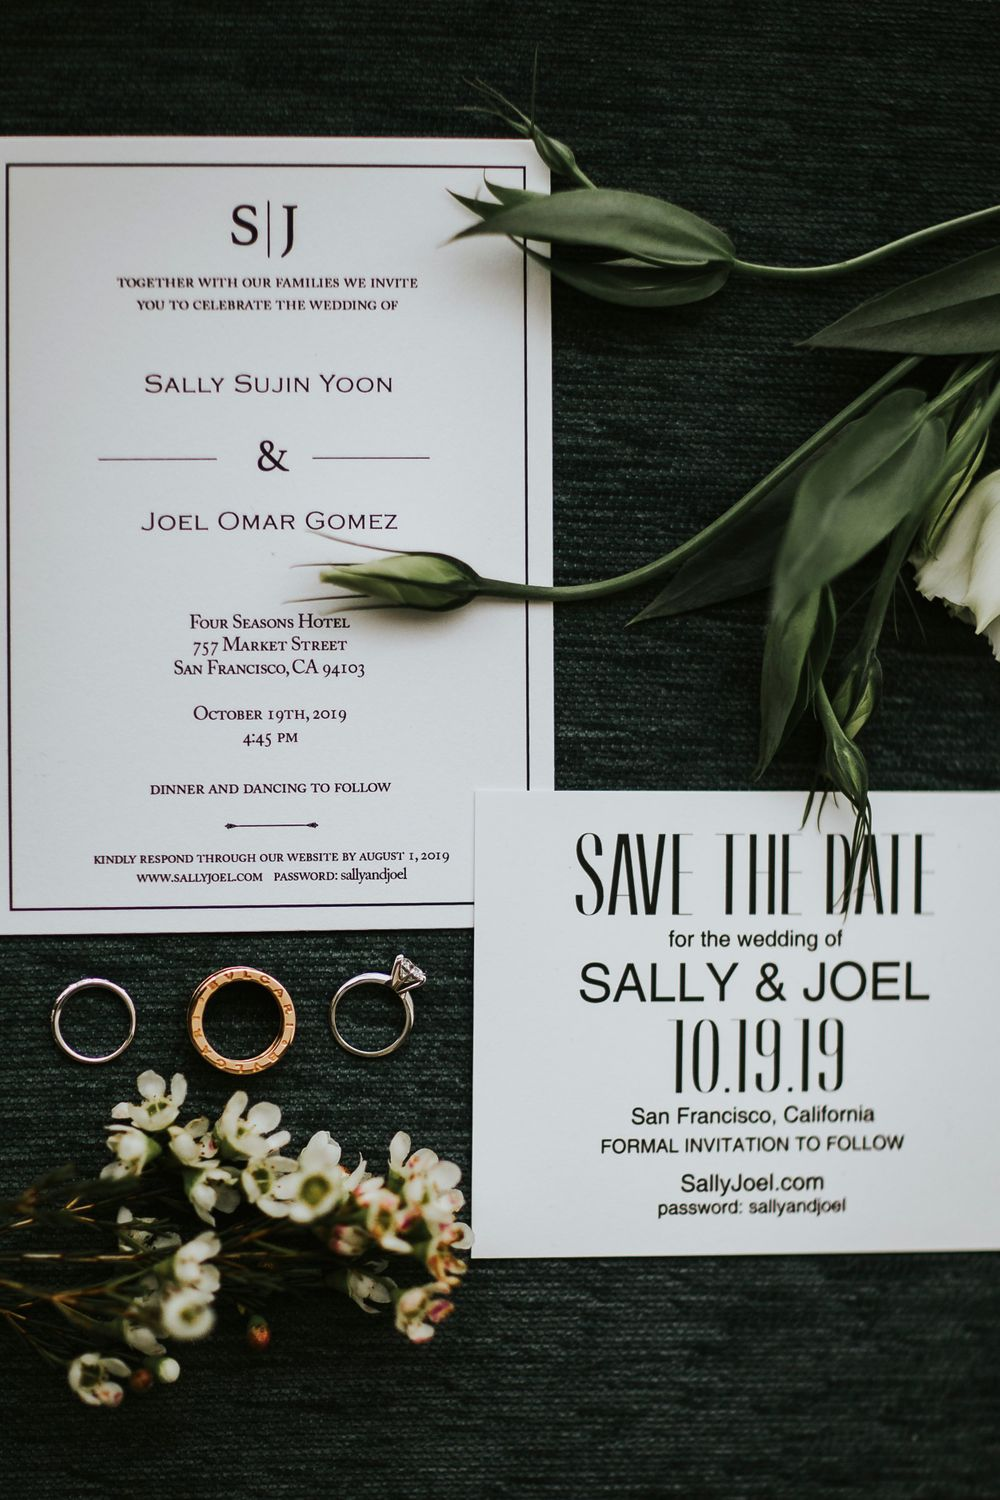 rings laying flat next to save the dates and wedding invites with flowers and greenery